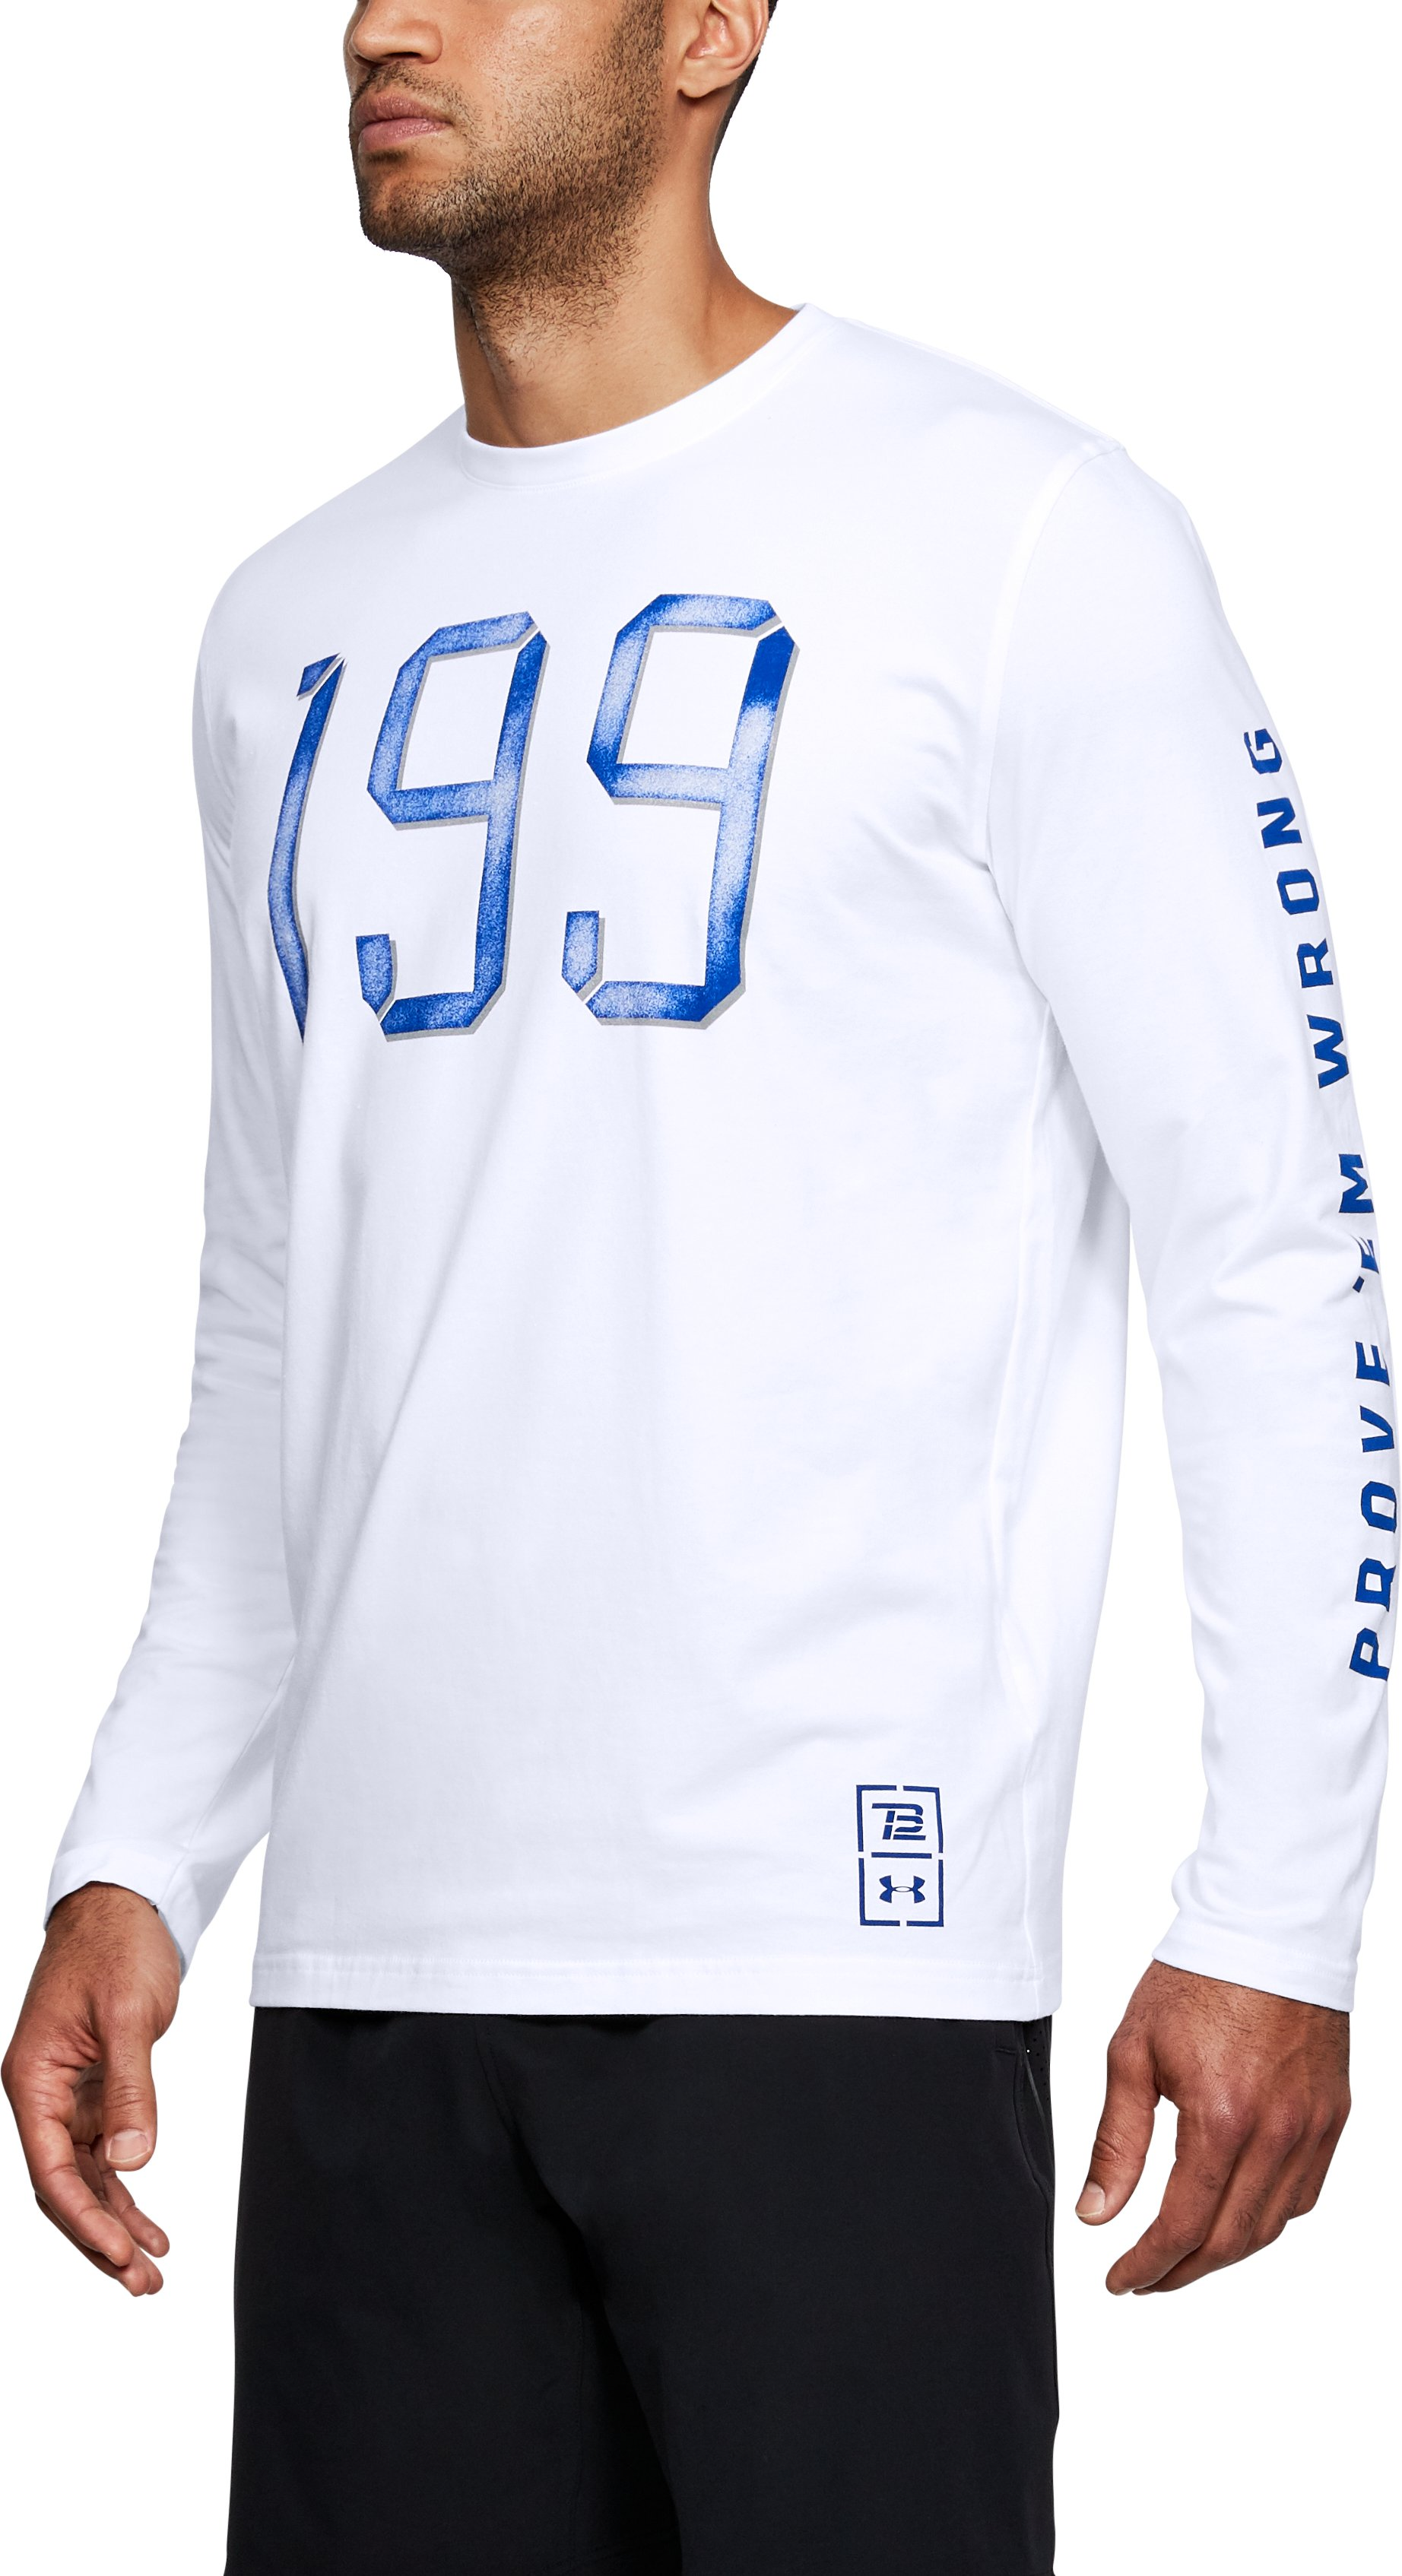 Men's TB12 UA 199 Long Sleeve T-Shirt, White